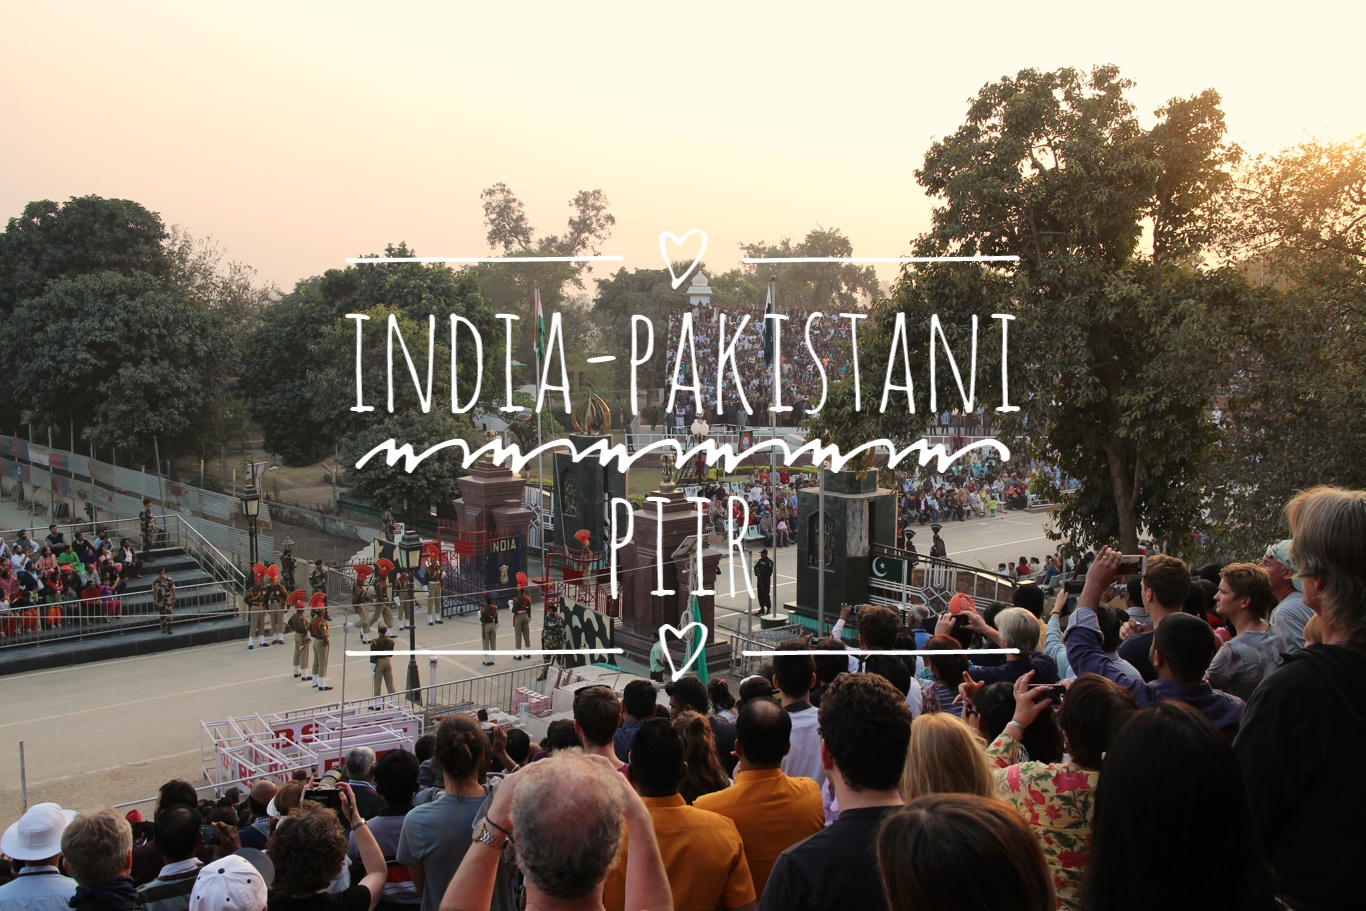 India-Pakistani piir